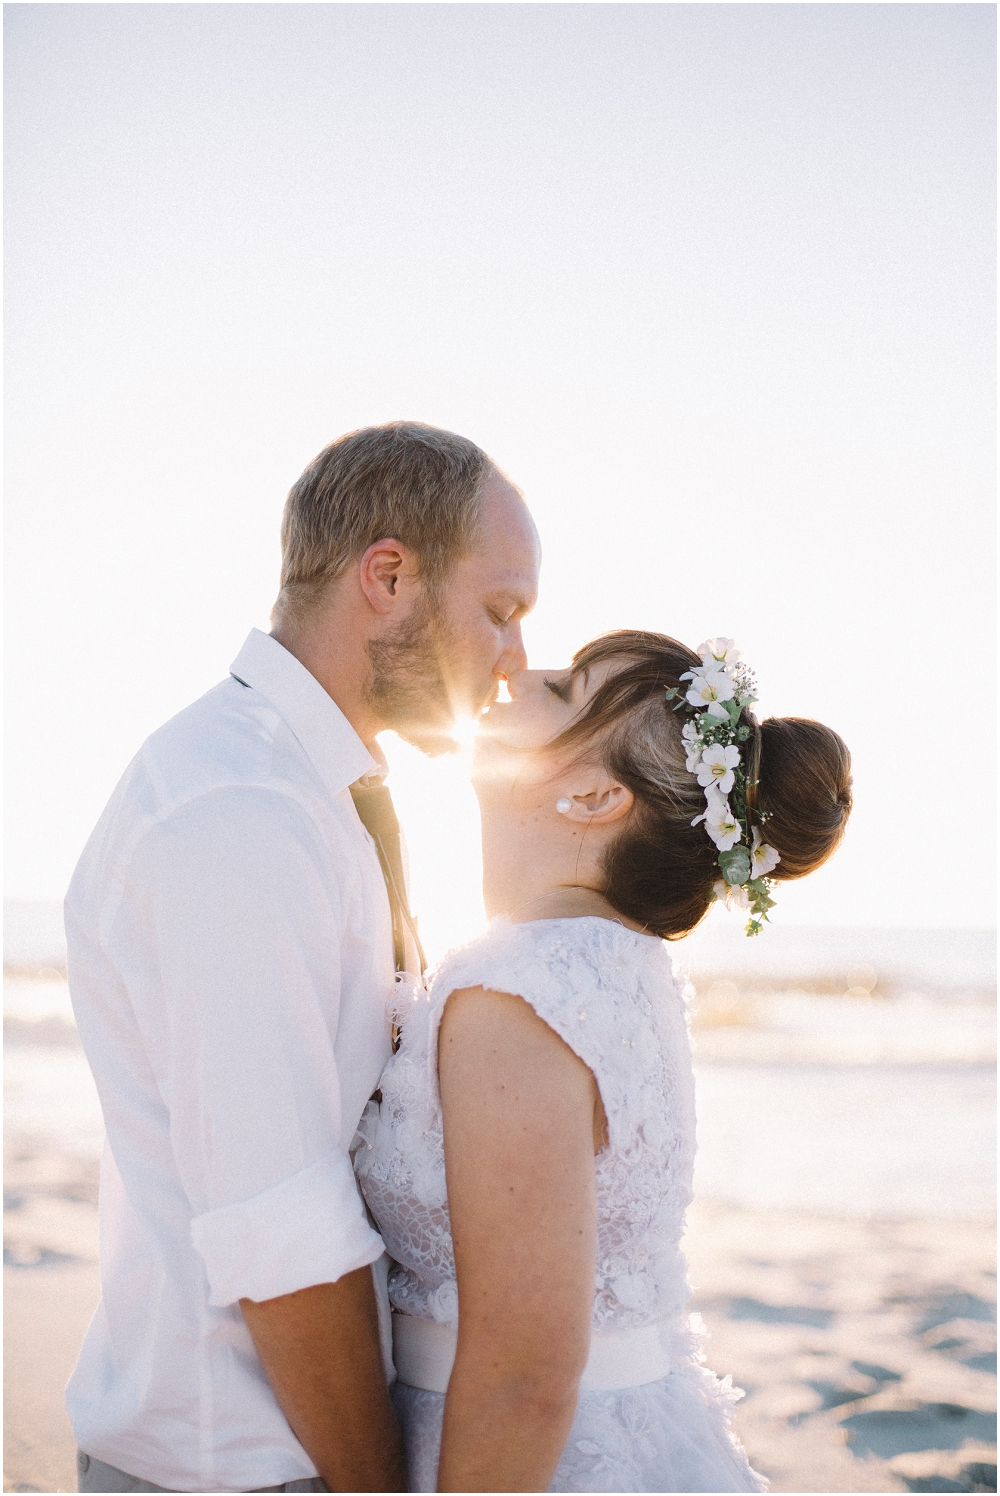 Western Cape Wedding Photographer Ronel Kruger Photography Cape Town_9447.jpg